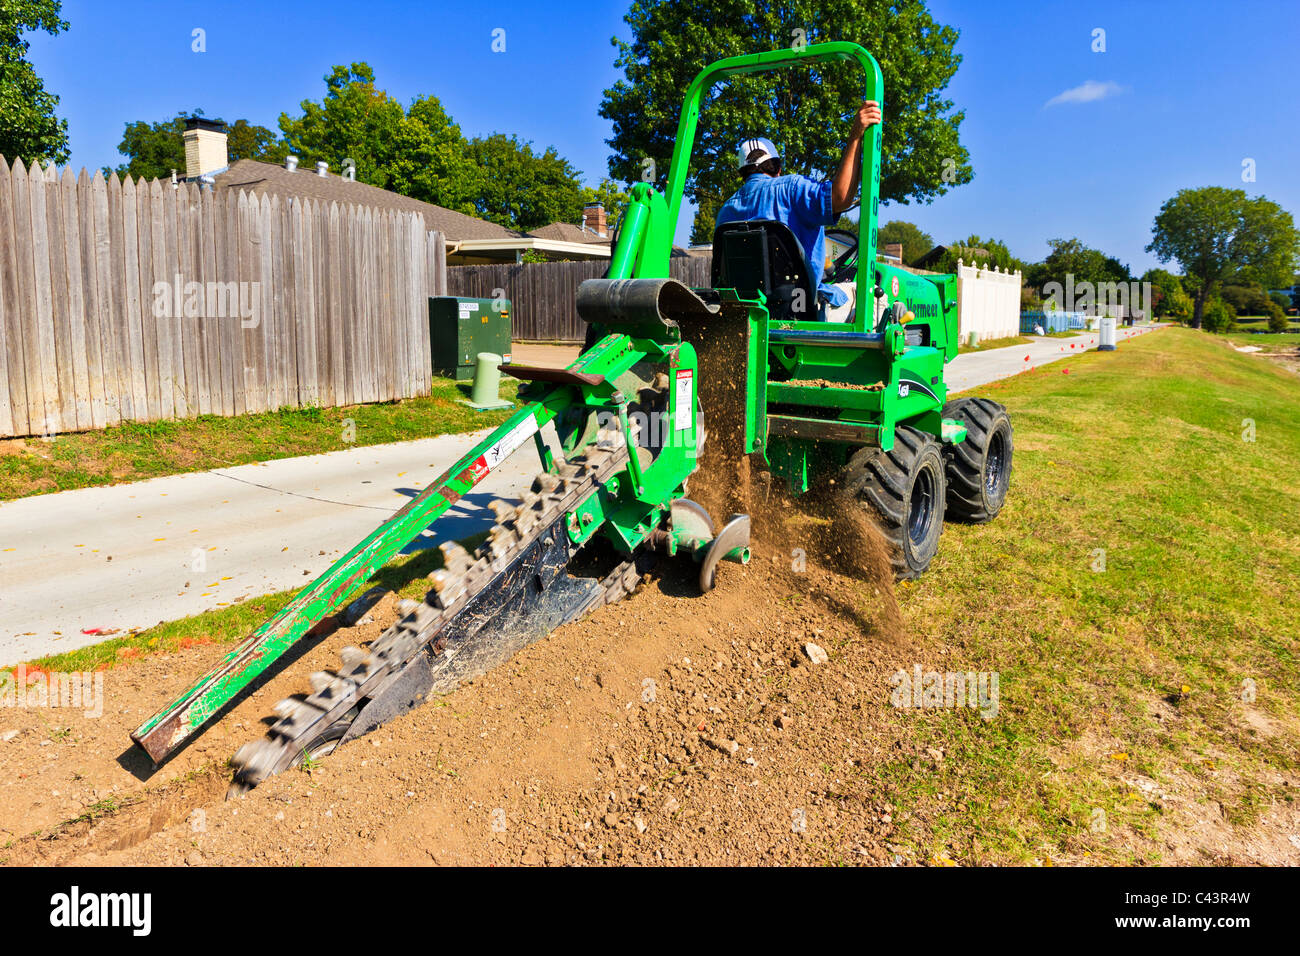 beautification, Chain trencher, construction equipment, dig trenches